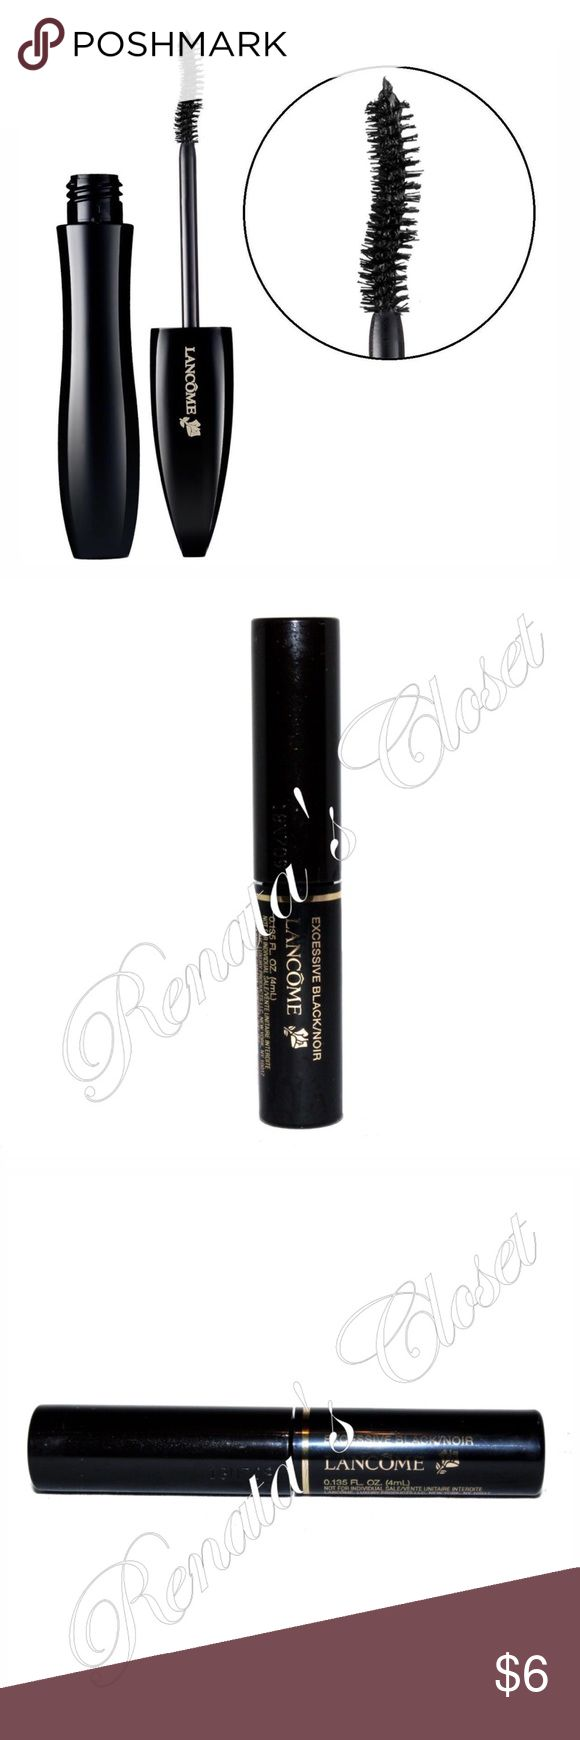 🌸 2 for $12 Deal Hypnose Drama FB Vol Mascara Buy this & another item from the 2 for $12 Deal. Offer $12 on the OFFER section.  * shade - EXCESSIVE BLACK/NOIR * weight - 4ml/0.135 fl oz * 2 ml less than the full size w/c sells for $27.50 * valued at $18.35 * unused but opened to take a picture * stock photo provided to show color & inside of the item * watermarked photos are of the actual item * smoke-free home * videotaped to protect seller from fraudulent claims Lancome Makeup Mascara